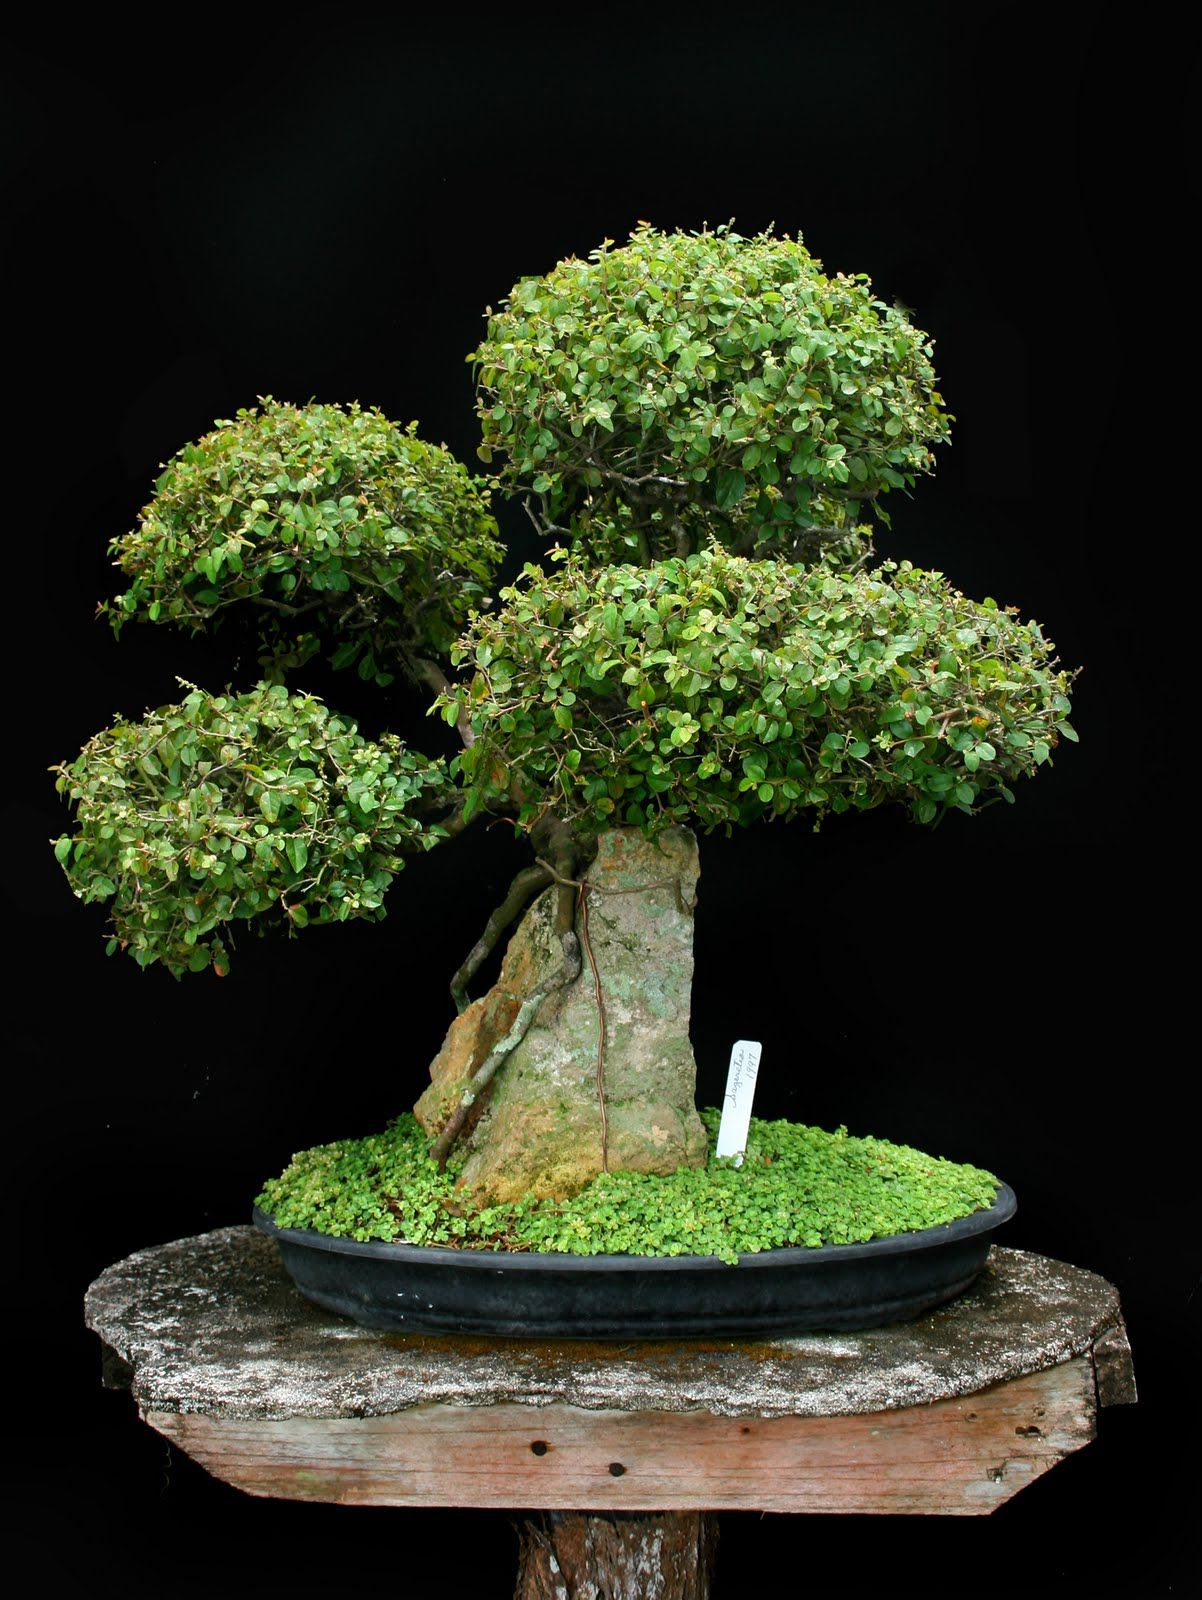 bonsaipam julio 2011 m s bonsai pinterest miniatur b ume und bilder. Black Bedroom Furniture Sets. Home Design Ideas